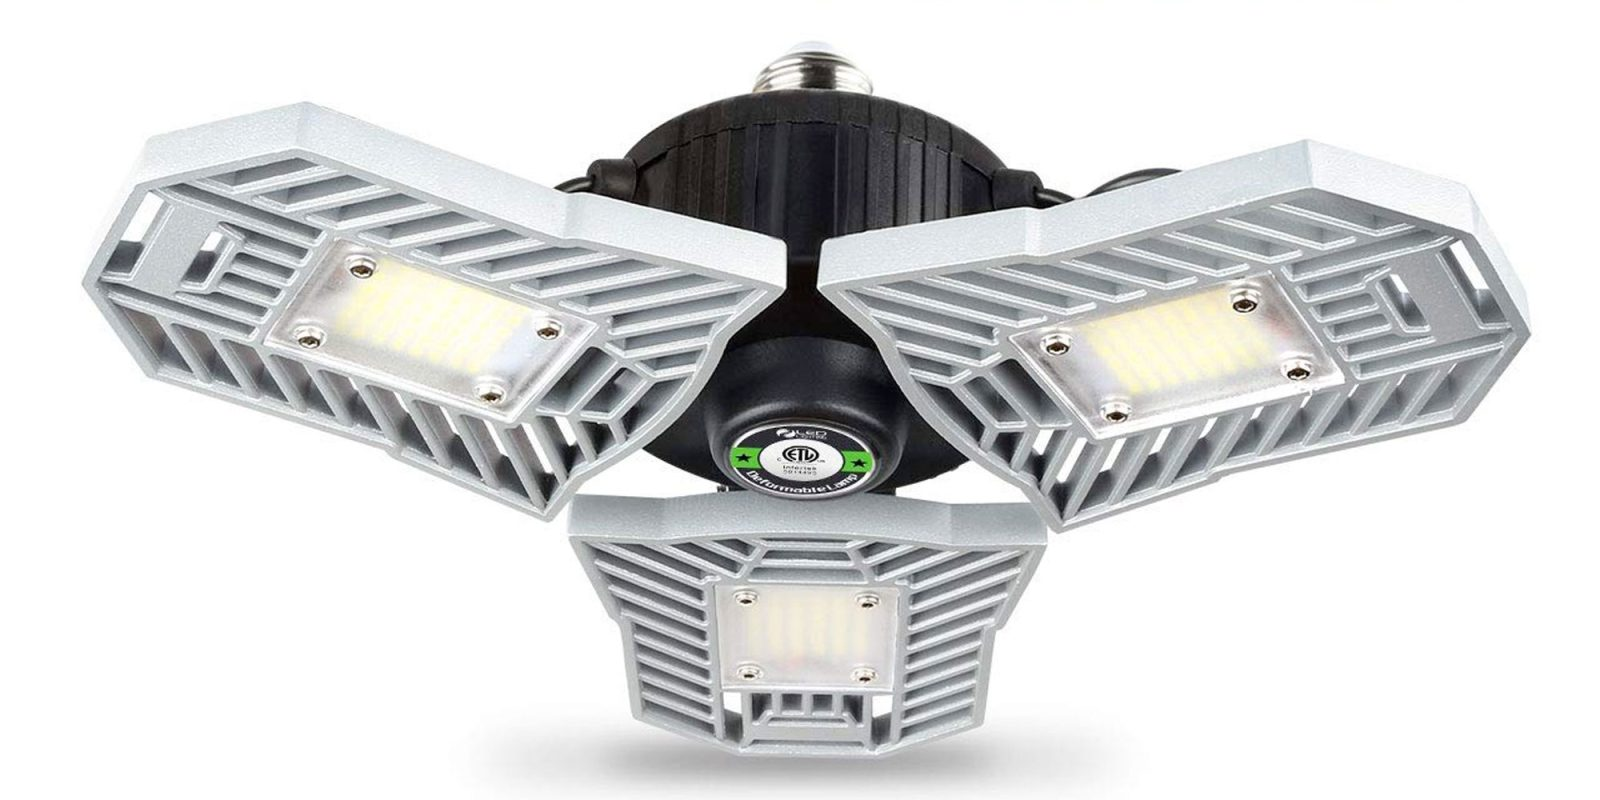 Every garage deserves this 6,000 lumen LED light at $27 shipped (30% off)